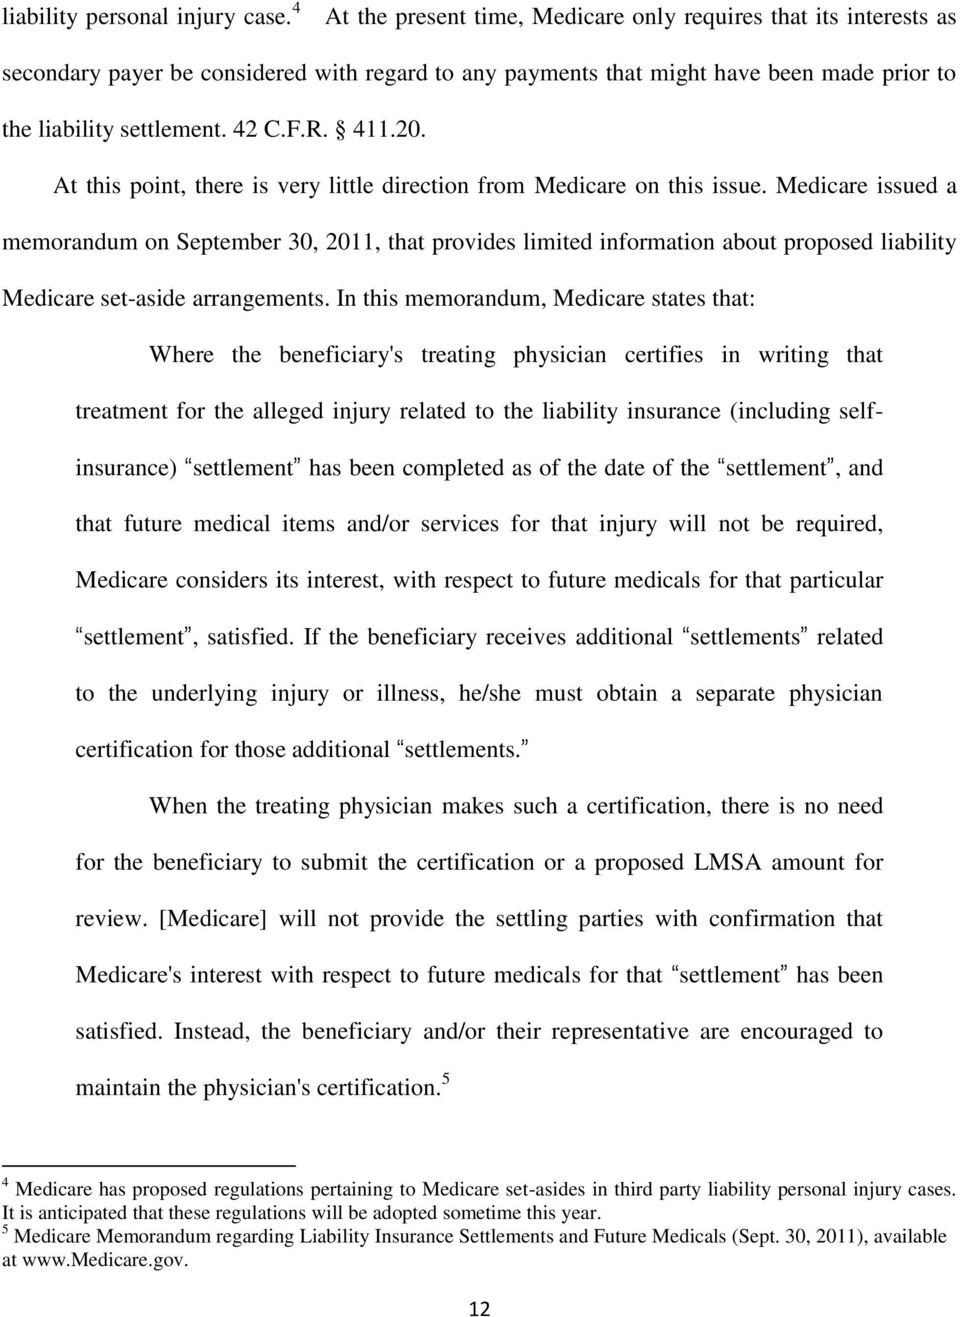 411.20. At this point, there is very little direction from Medicare on this issue.